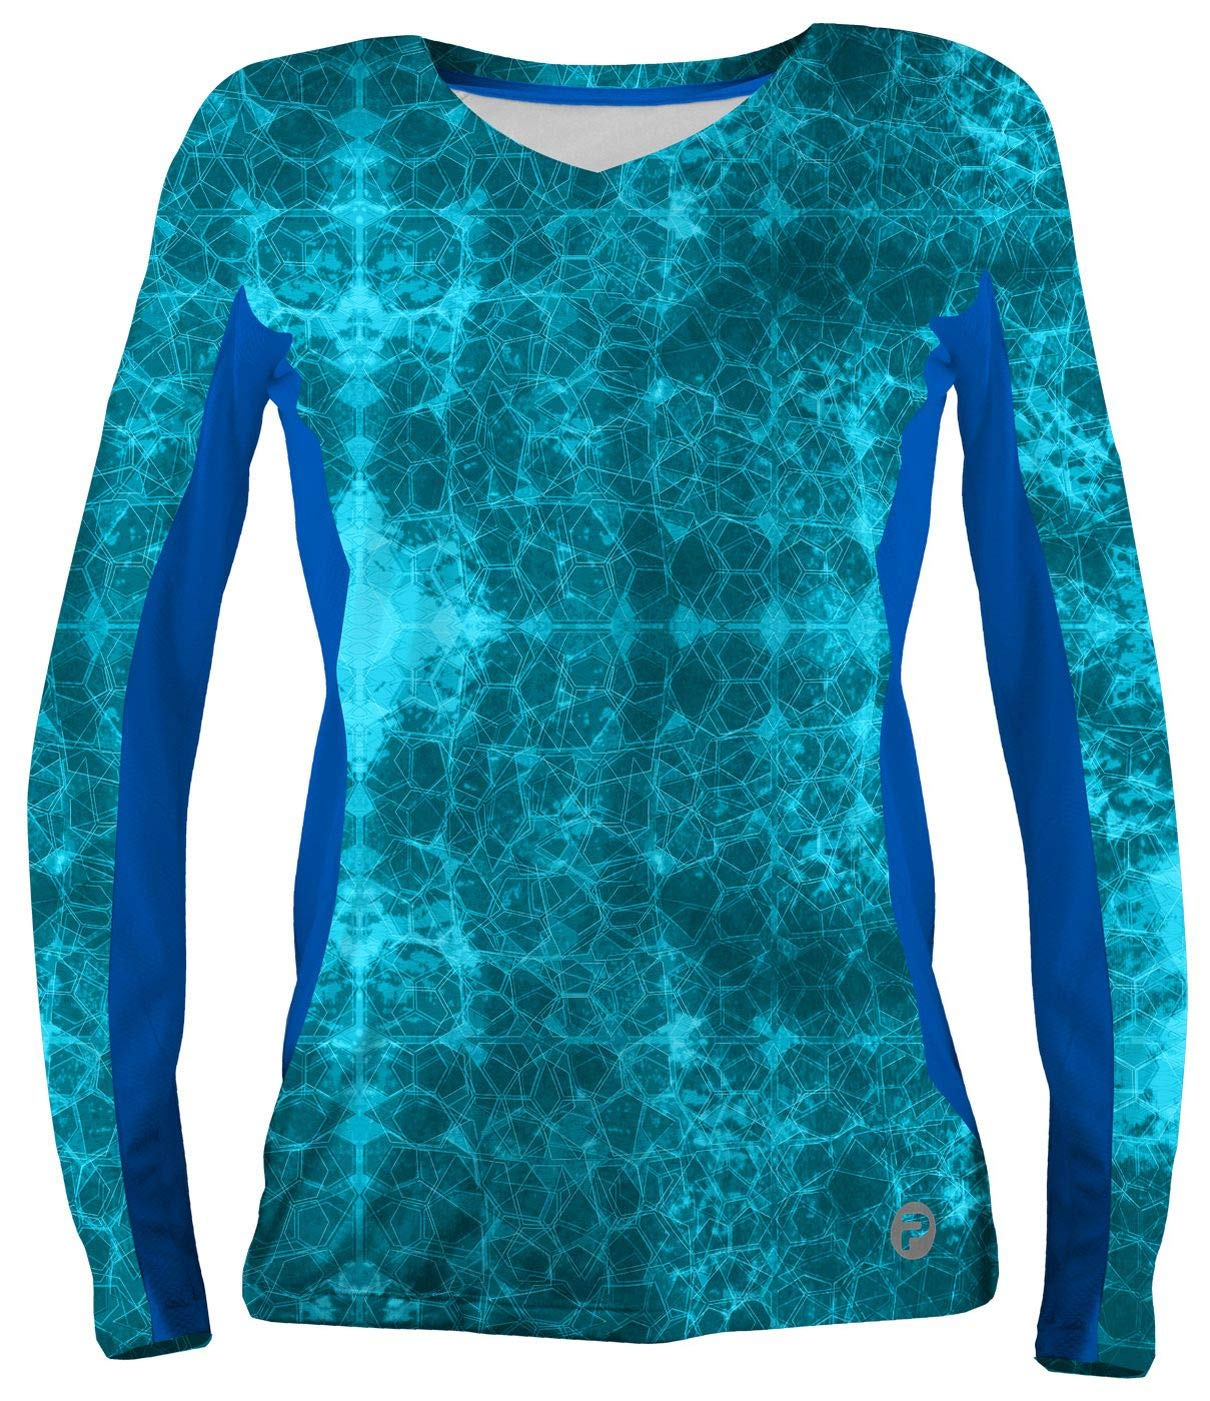 Pelagic Women's Solar Pro Long Sleeve Fishing Shirt | Hex Print | UPF 50+ Sun Protection by PELAGIC